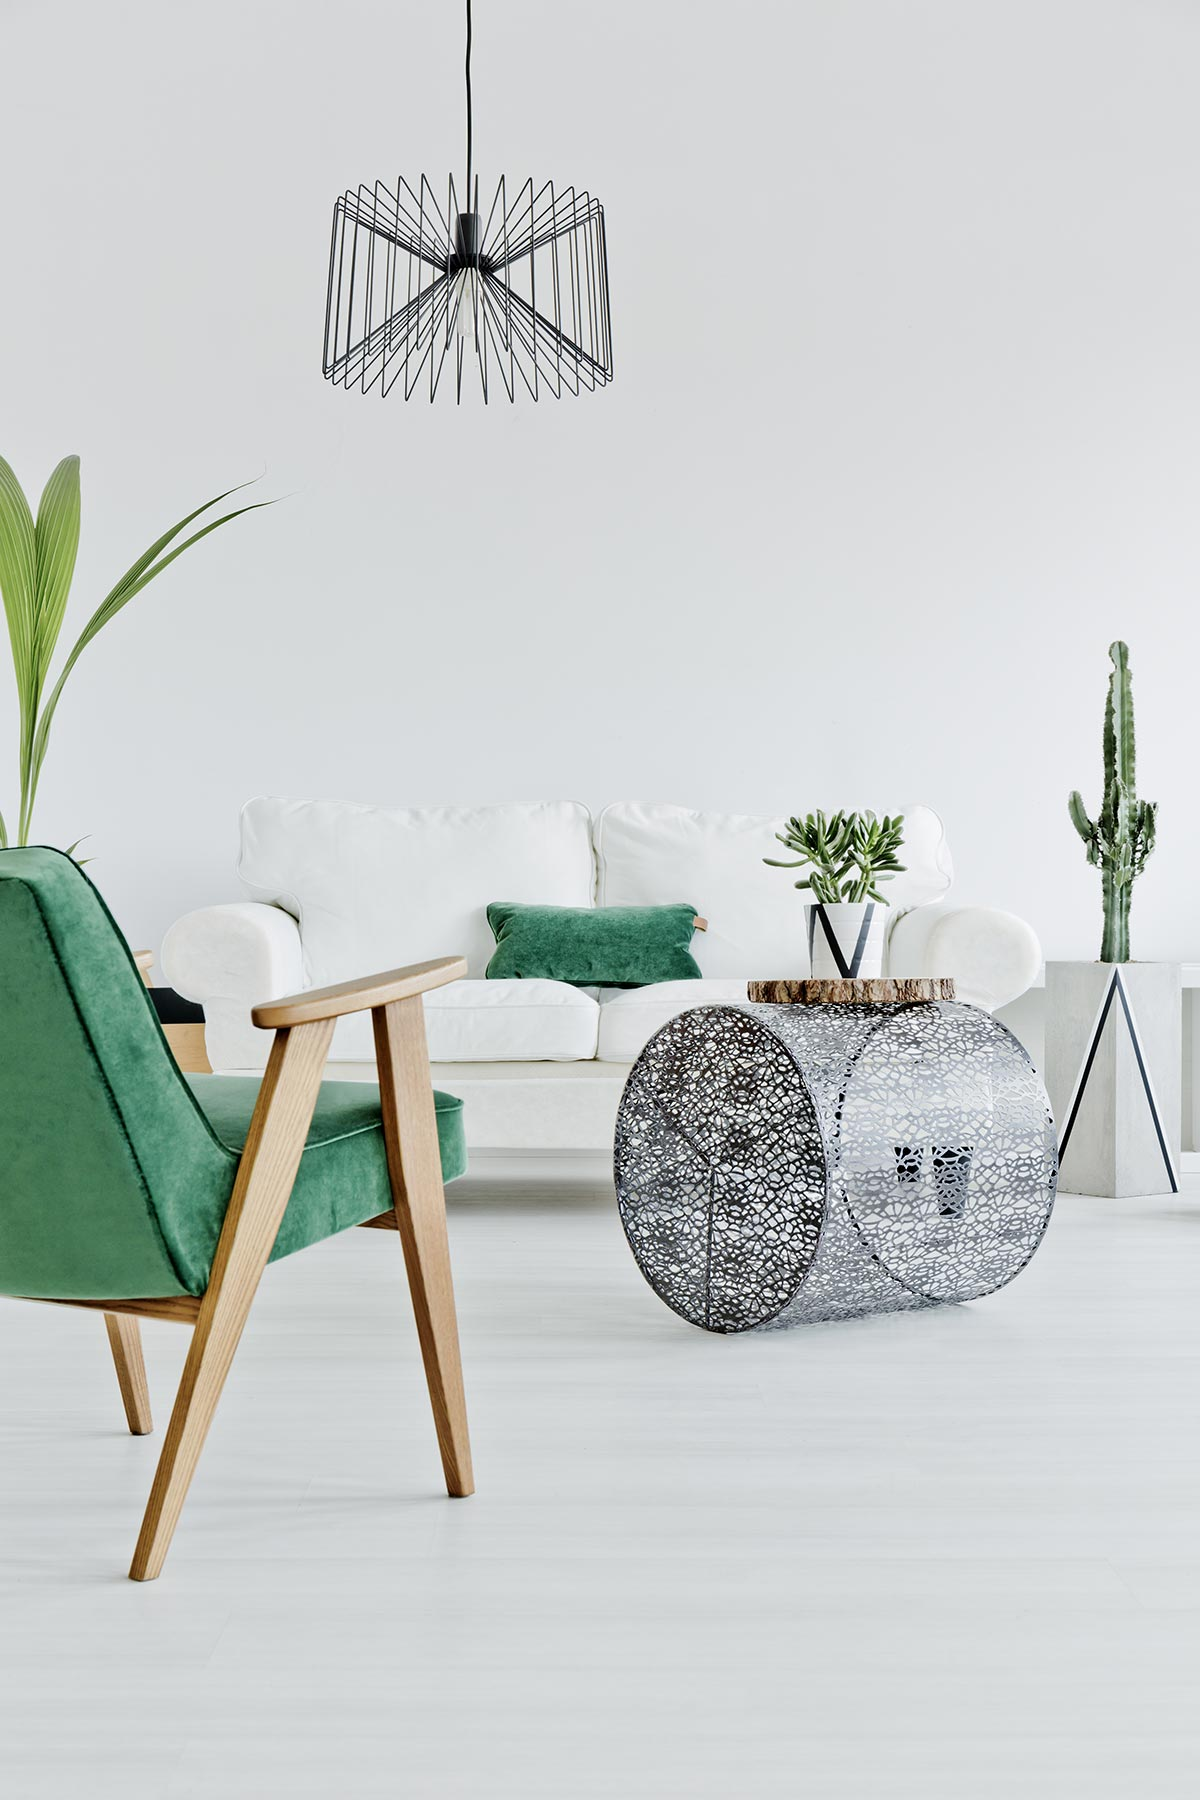 apartment-in-nordic-style-PBM5D8A